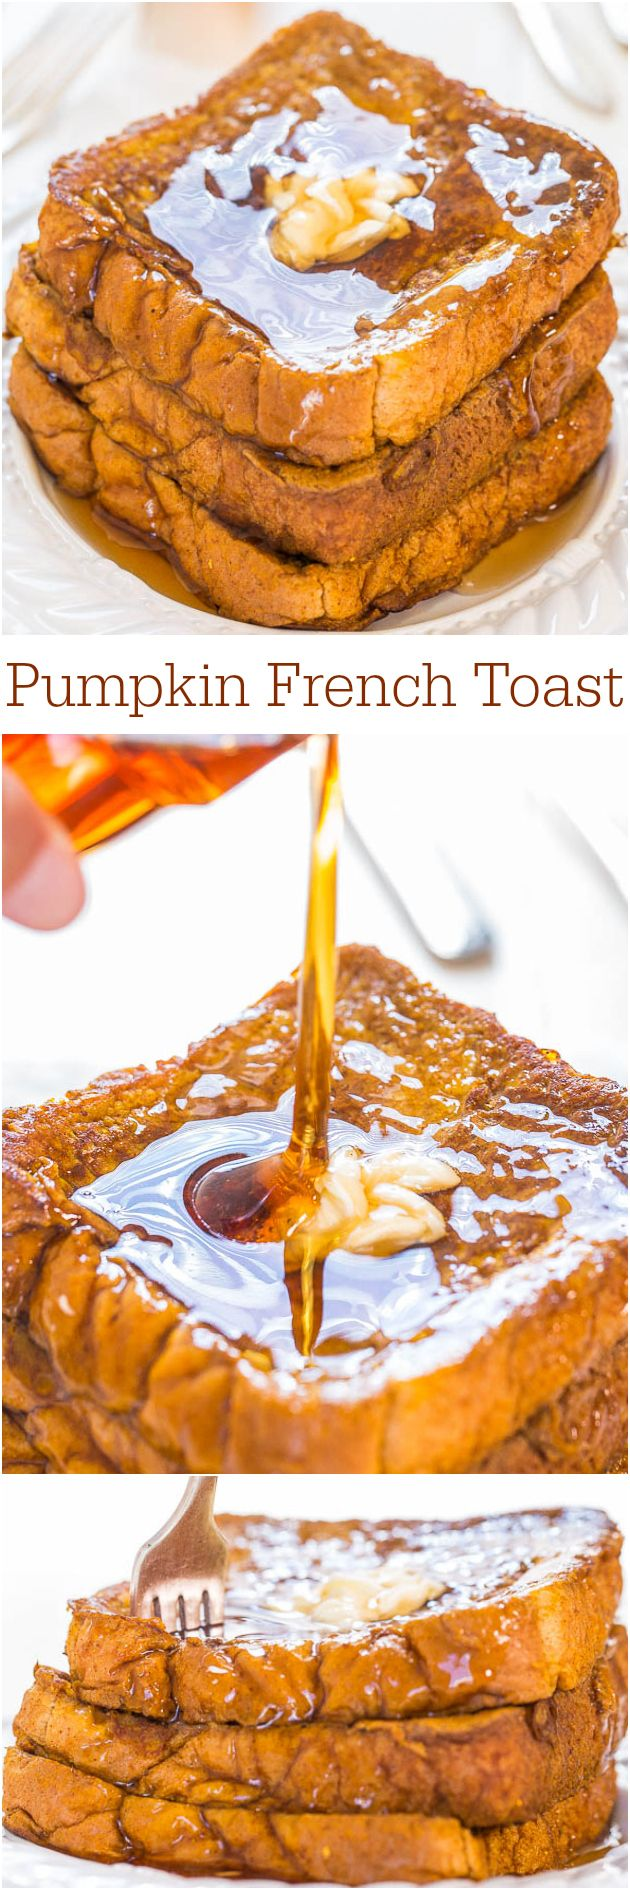 Perfect Thanksgiving breakfast: Pumpkin French Toast - Don't even think about skipping breakfast when you can have this! It's fast, easy, and packed with pumpkin flavor!!!